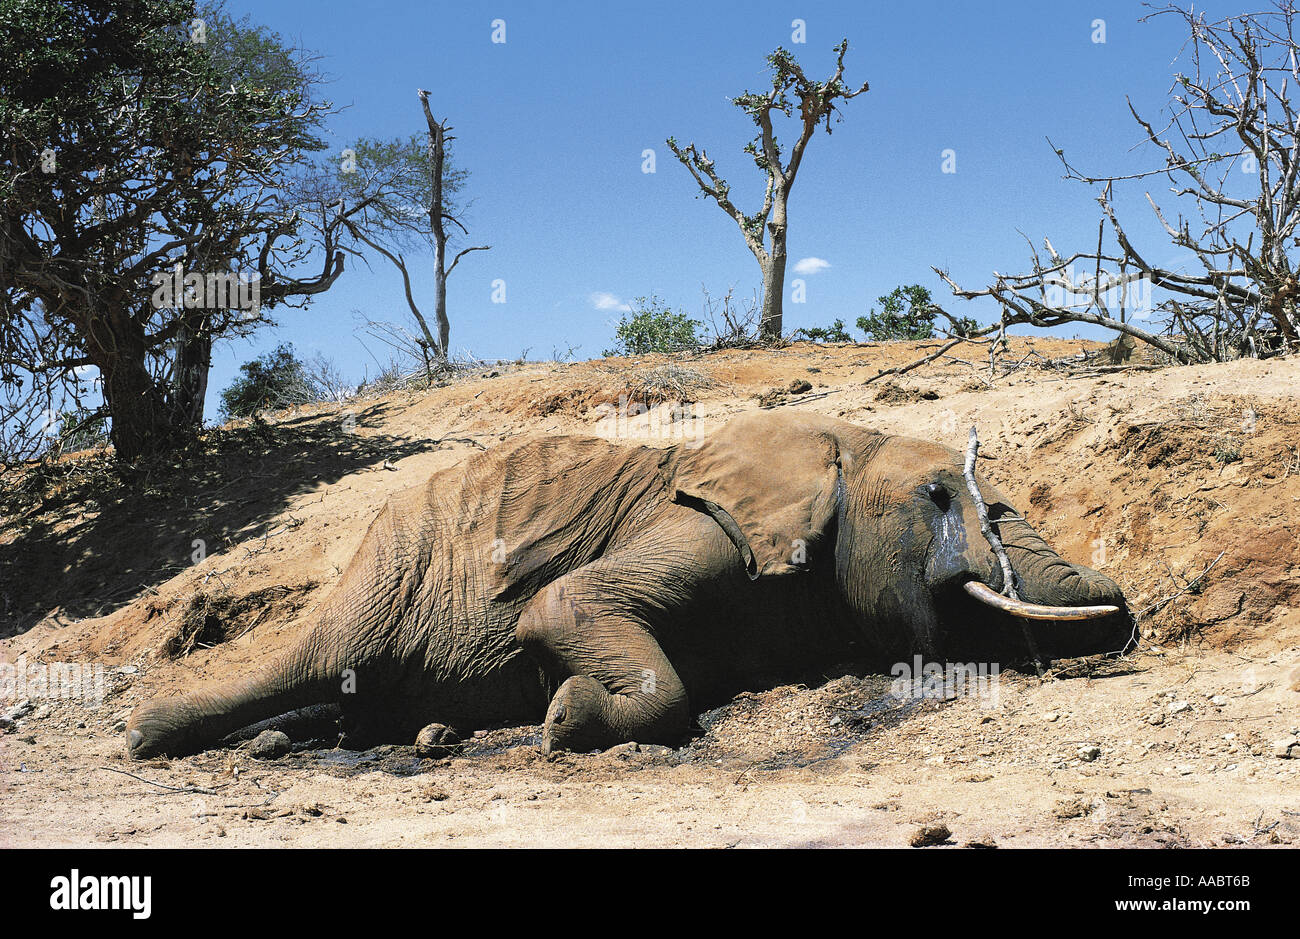 Dead elephant which has died of starvation - Stock Image